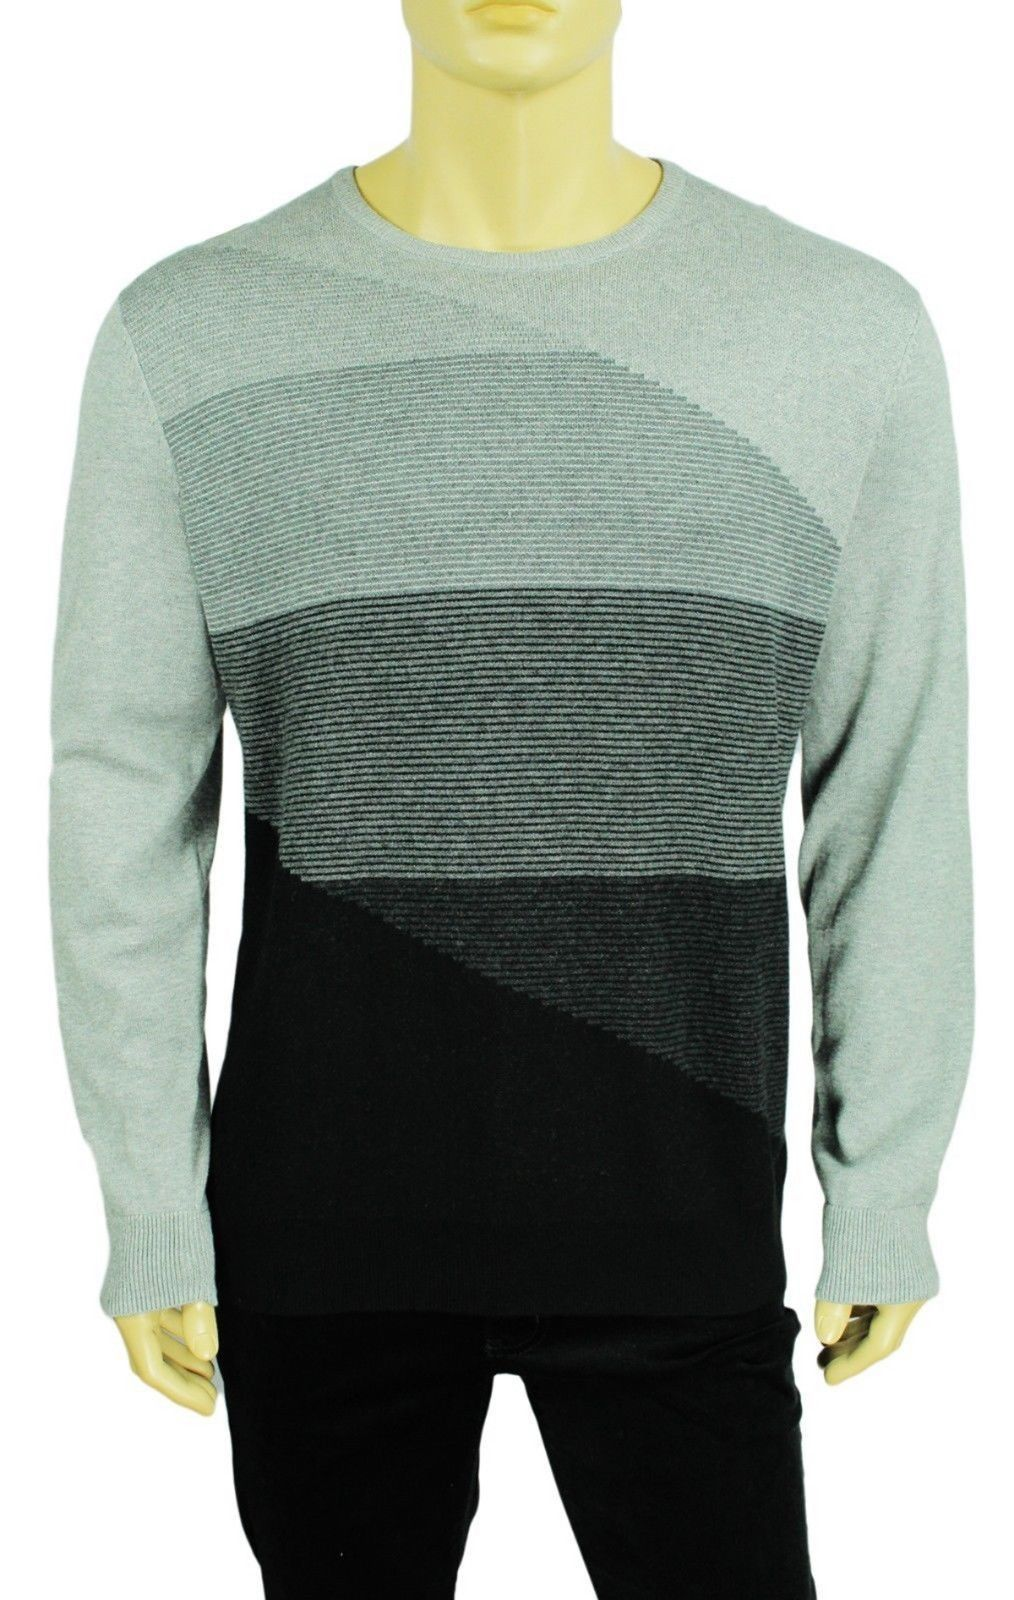 Primary image for NEW CALVIN KLEIN COTTON MODAL END ON END CREW NECK PULLOVER SWEATER $89